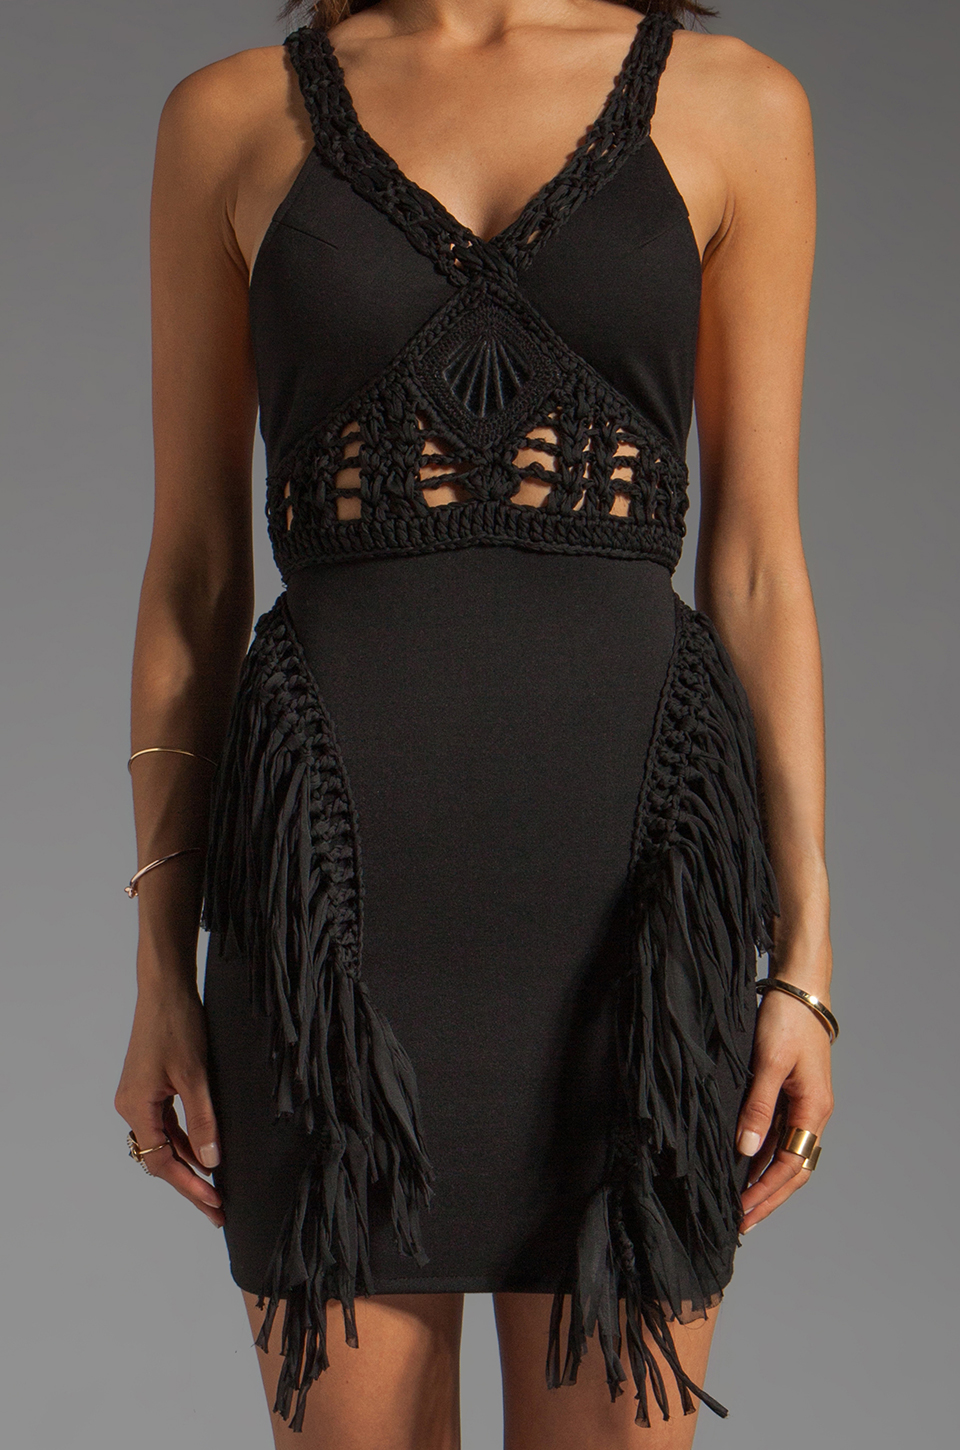 bless'ed are the meek Beguile Dress in Black